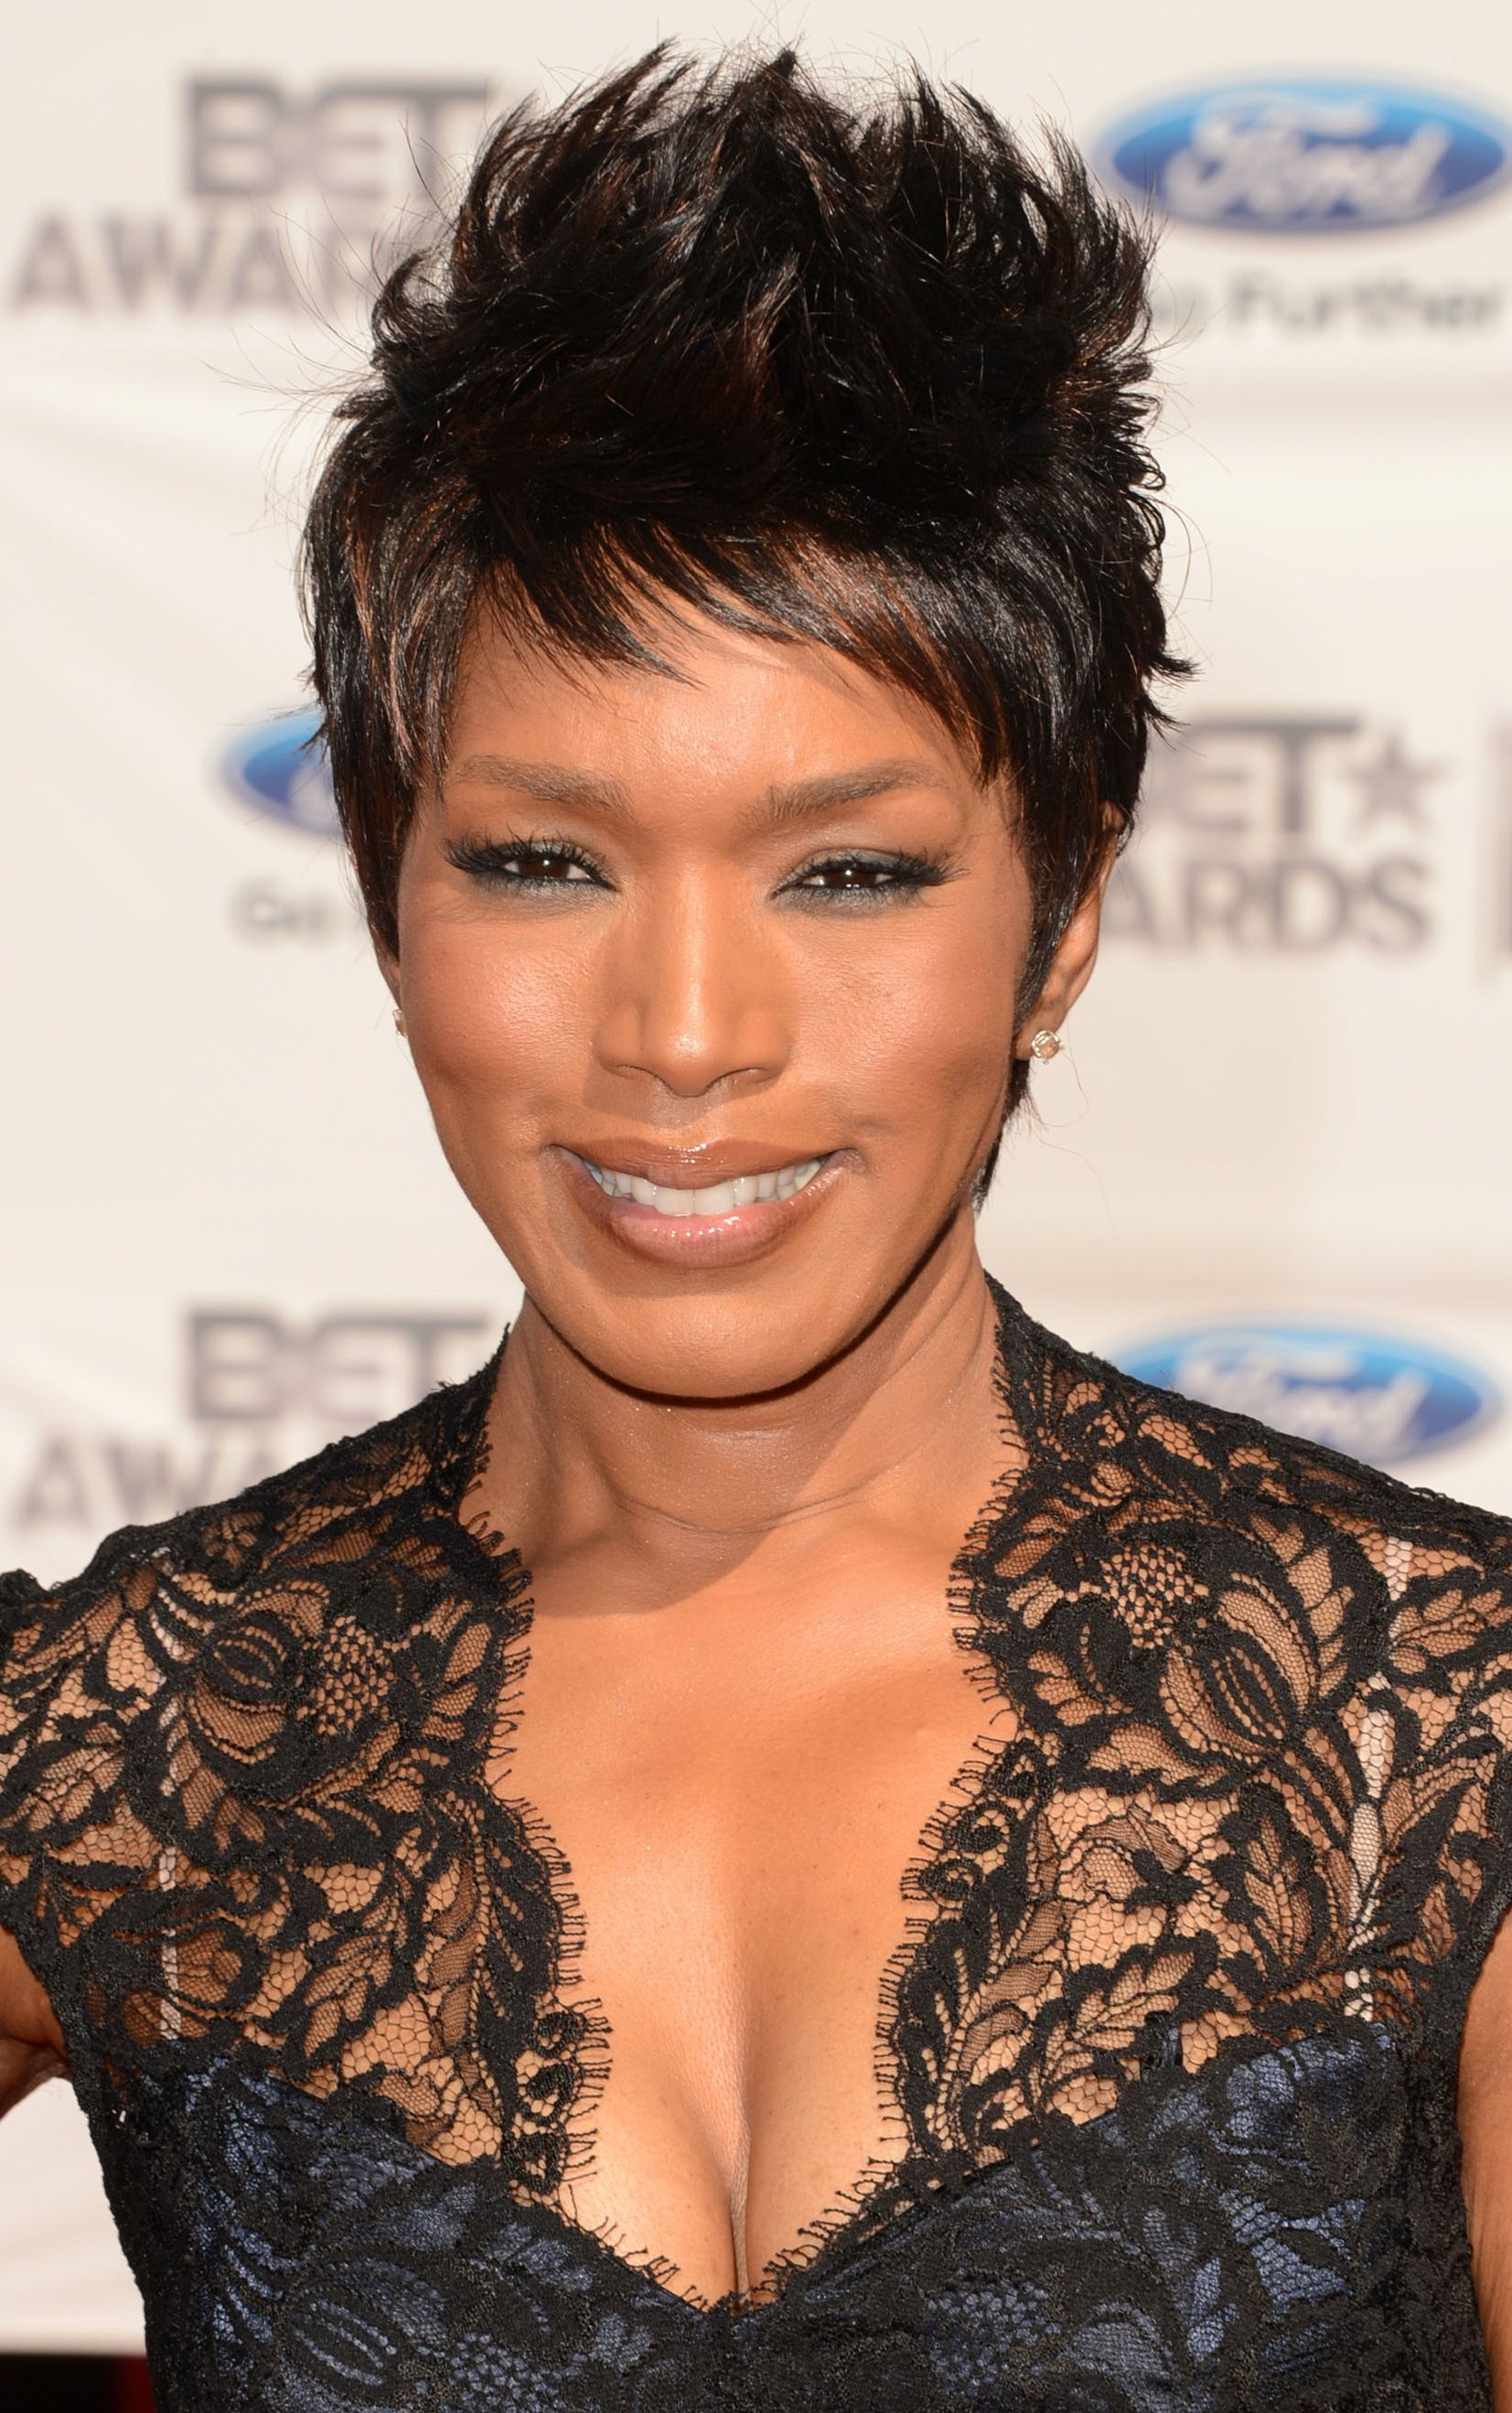 loving angela bassett's short layered cut. | hairstyles